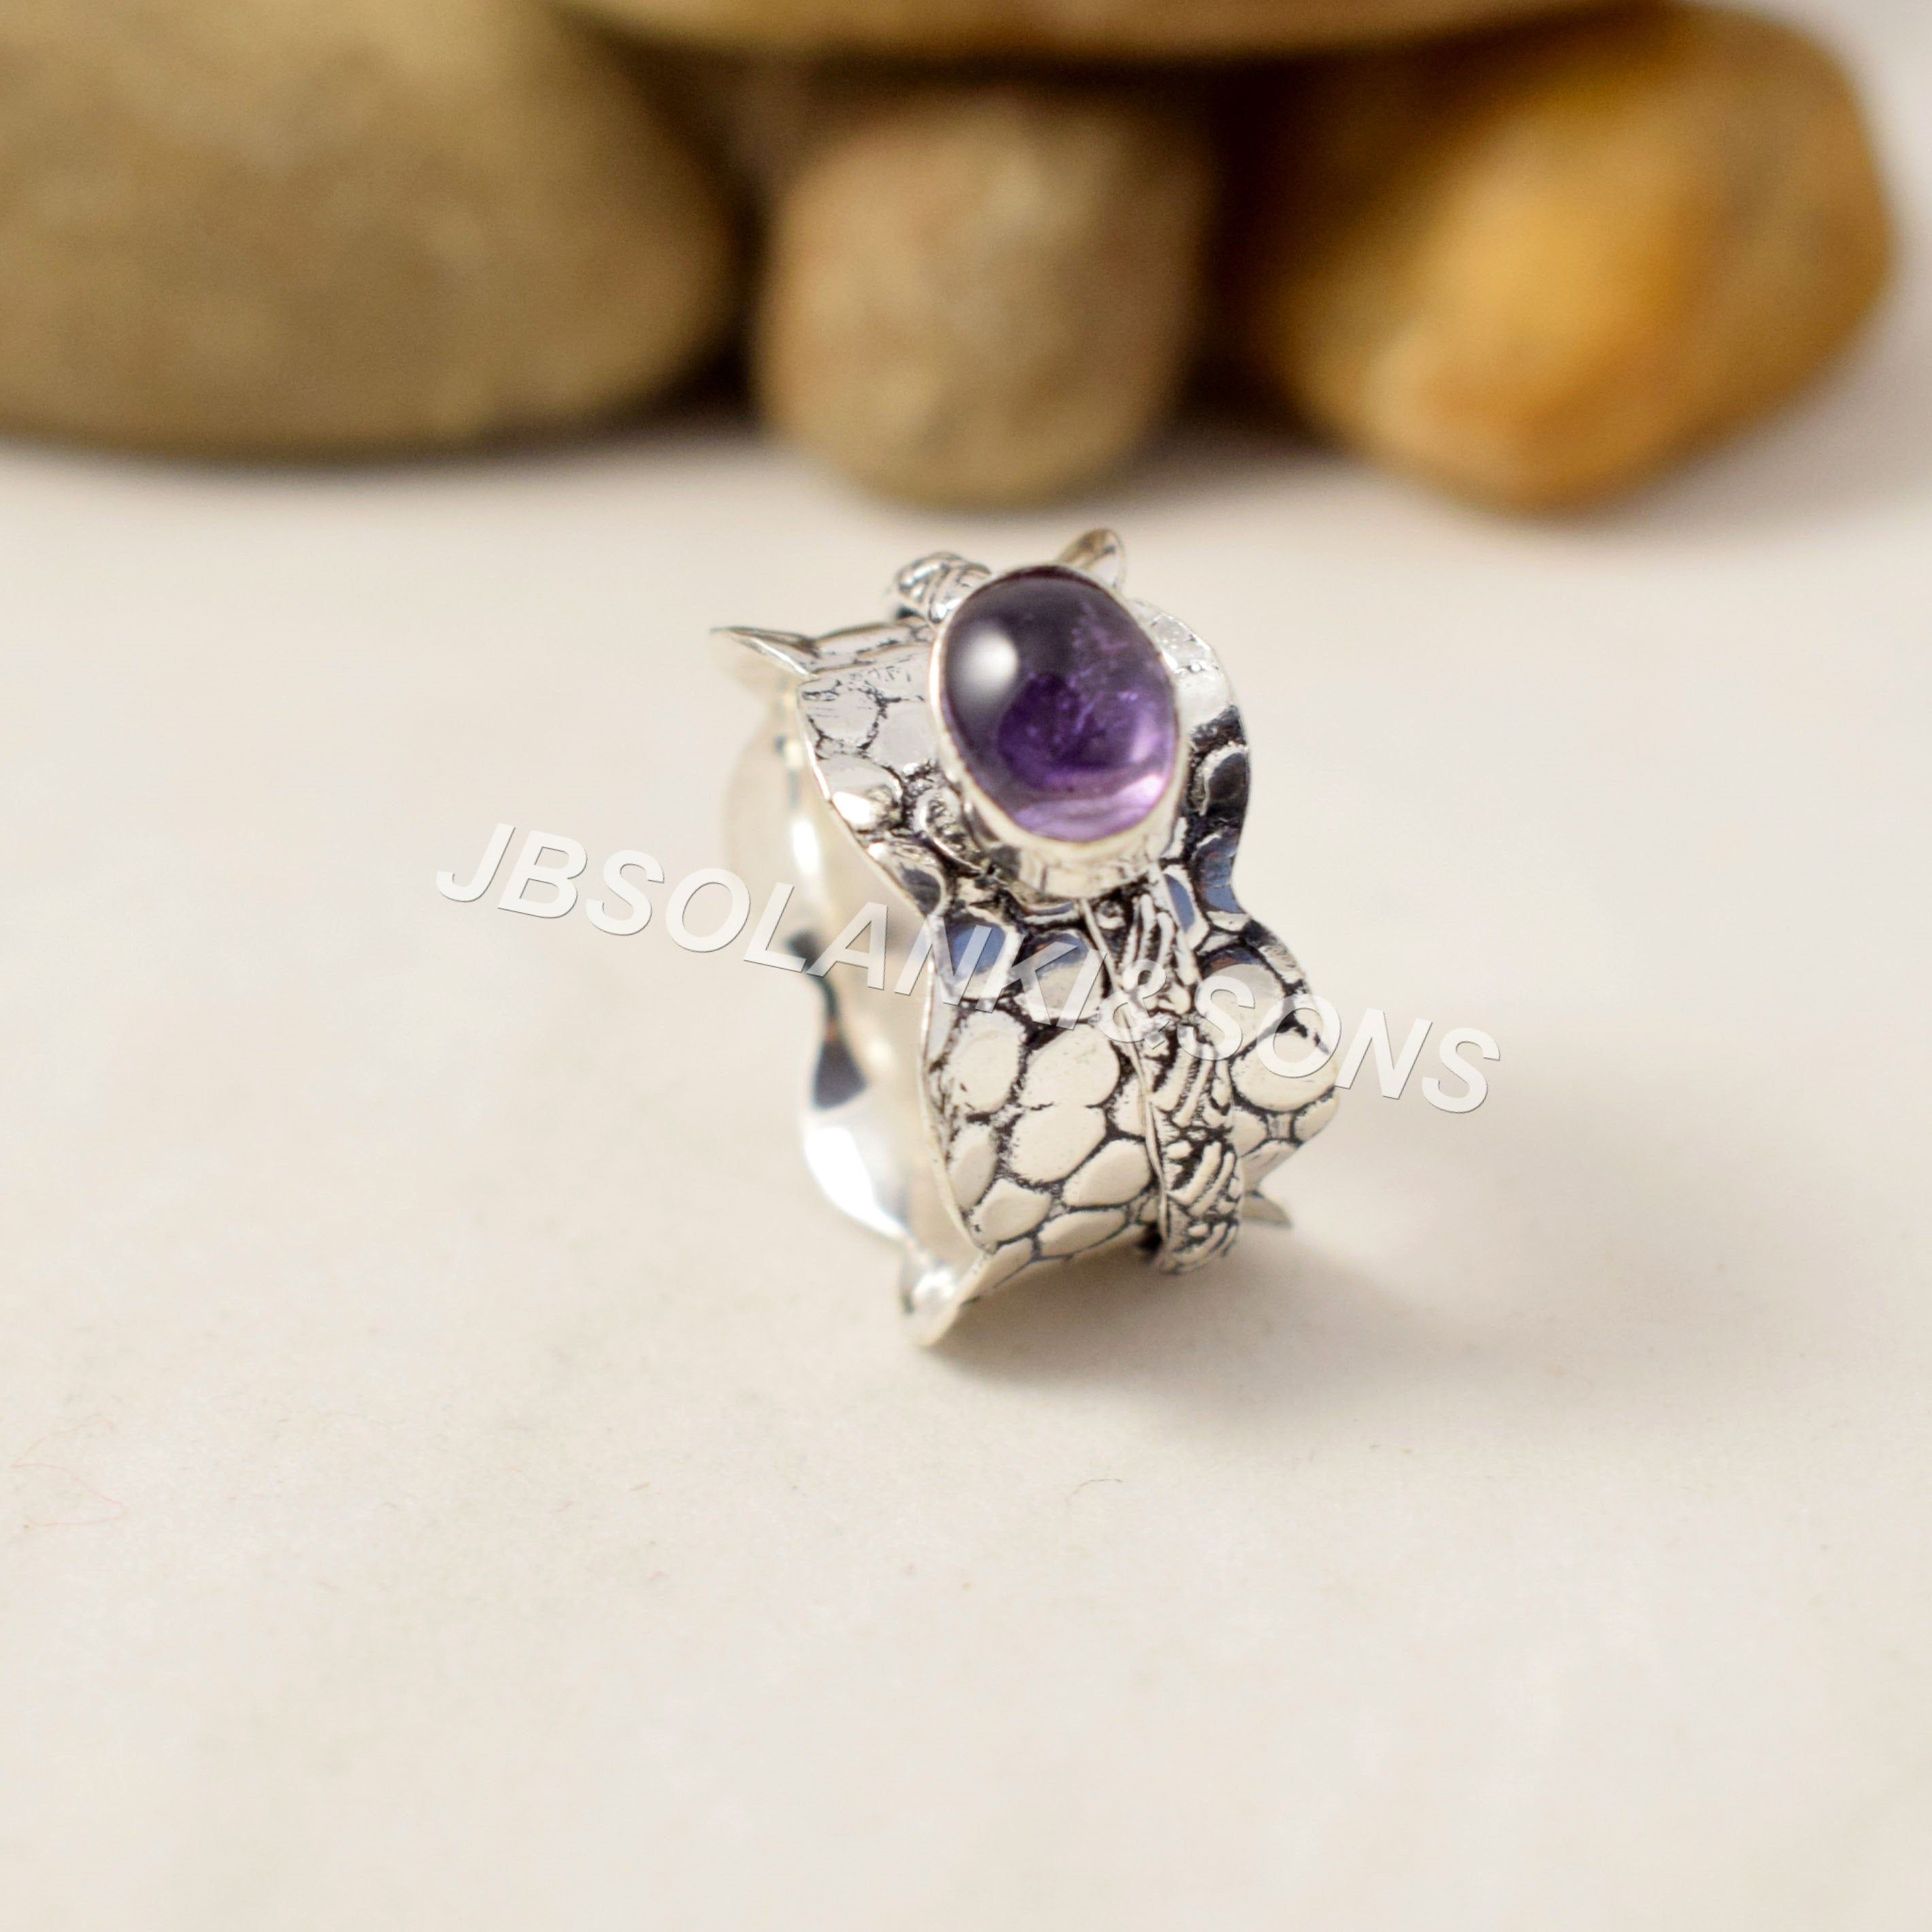 Thumb Ring Spinner Ring Gift For Her Amethyst Natural Gemstone Ring Antique silver Ring Silver Band Ring 925 Sterling Silver Ring